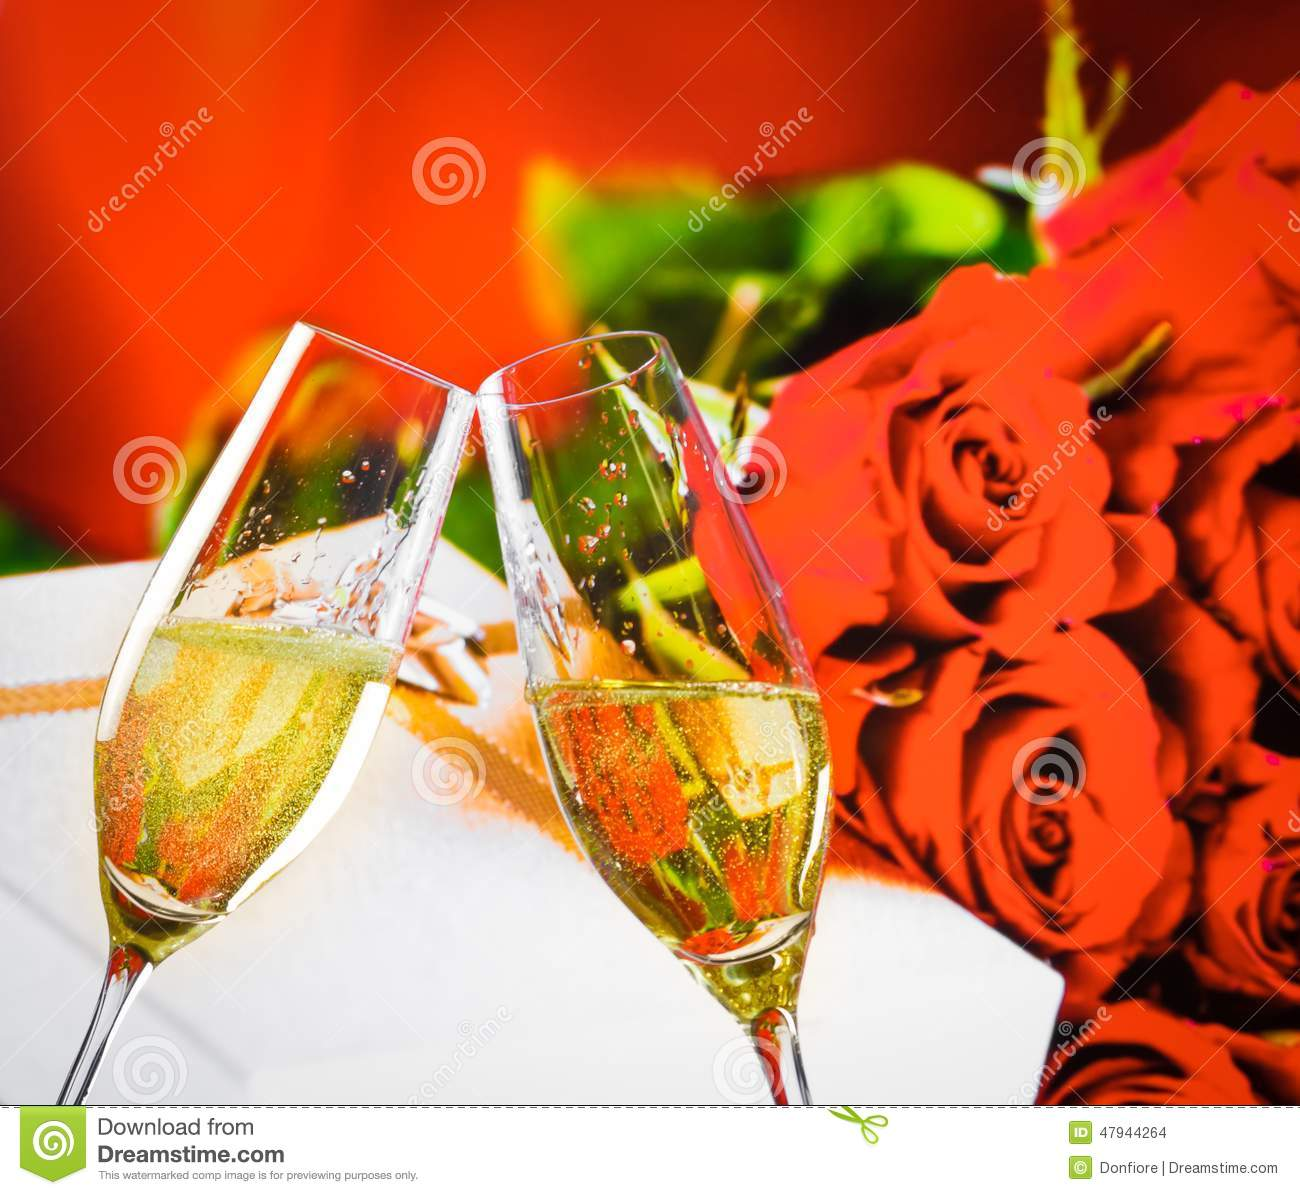 Champagne Flutes With Golden Bubbles On Wedding Roses Flowers Background Stock Photo Image